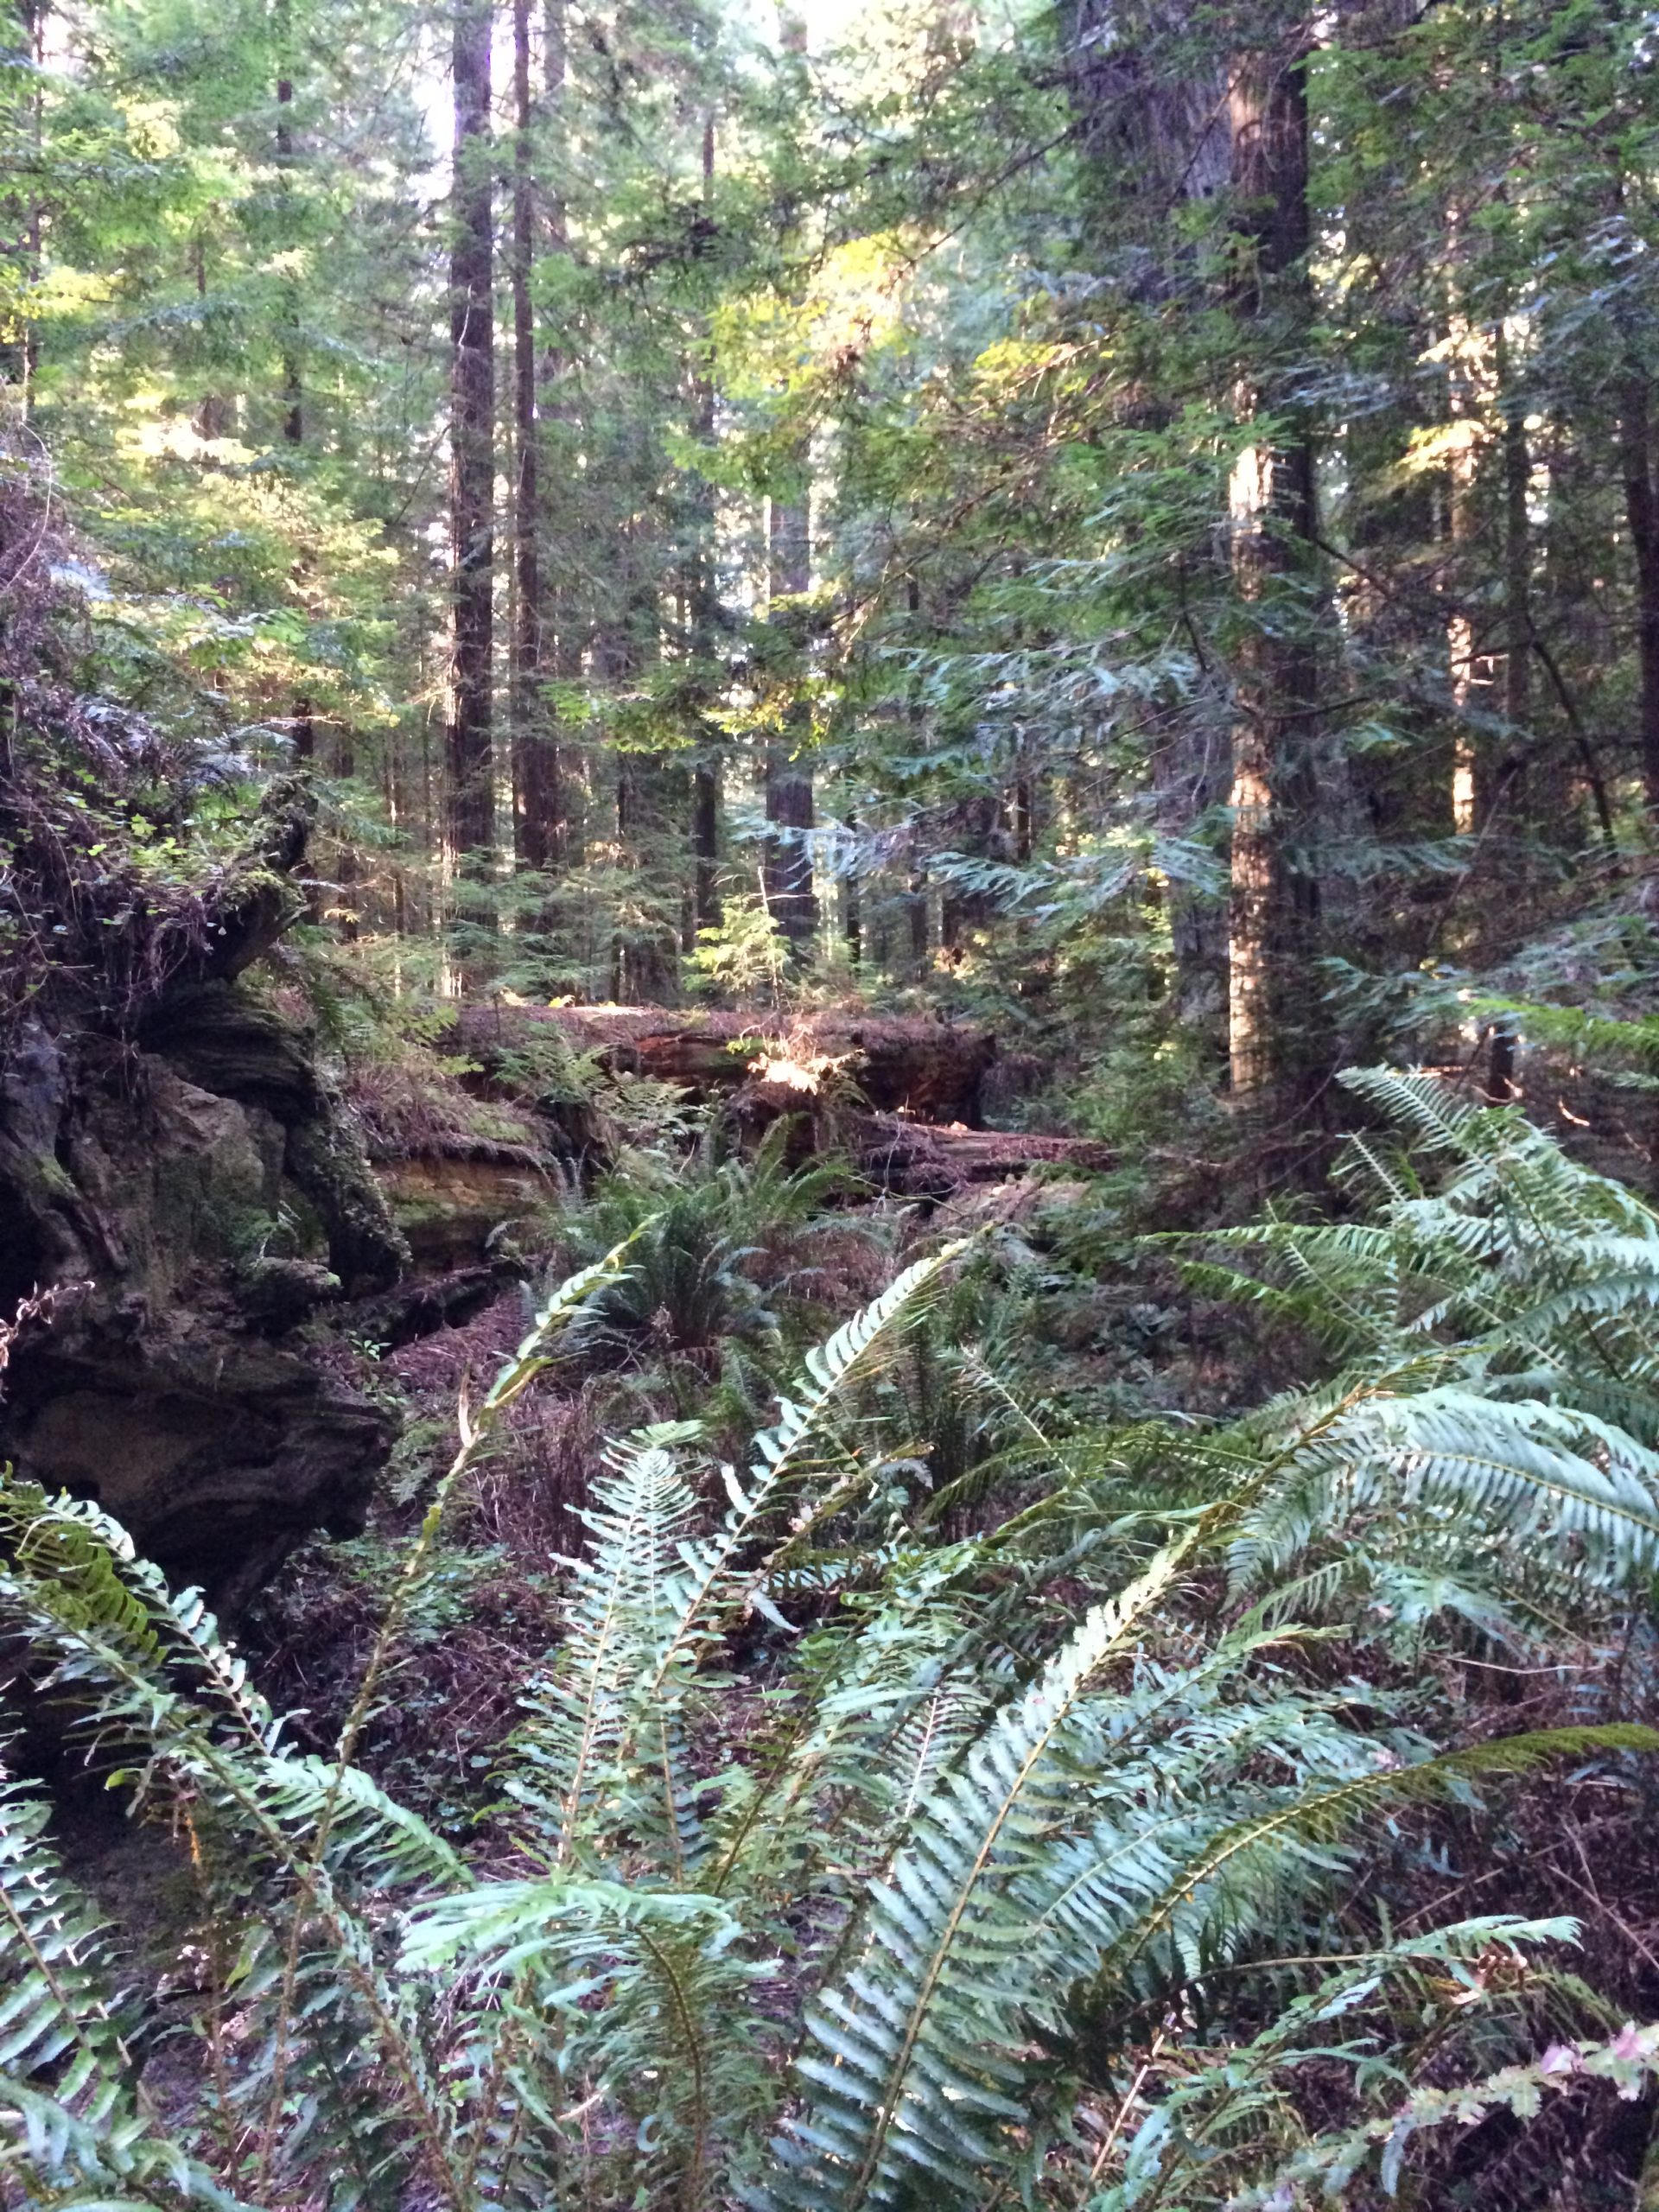 Redwoods forest with ferns and dappled sunlight